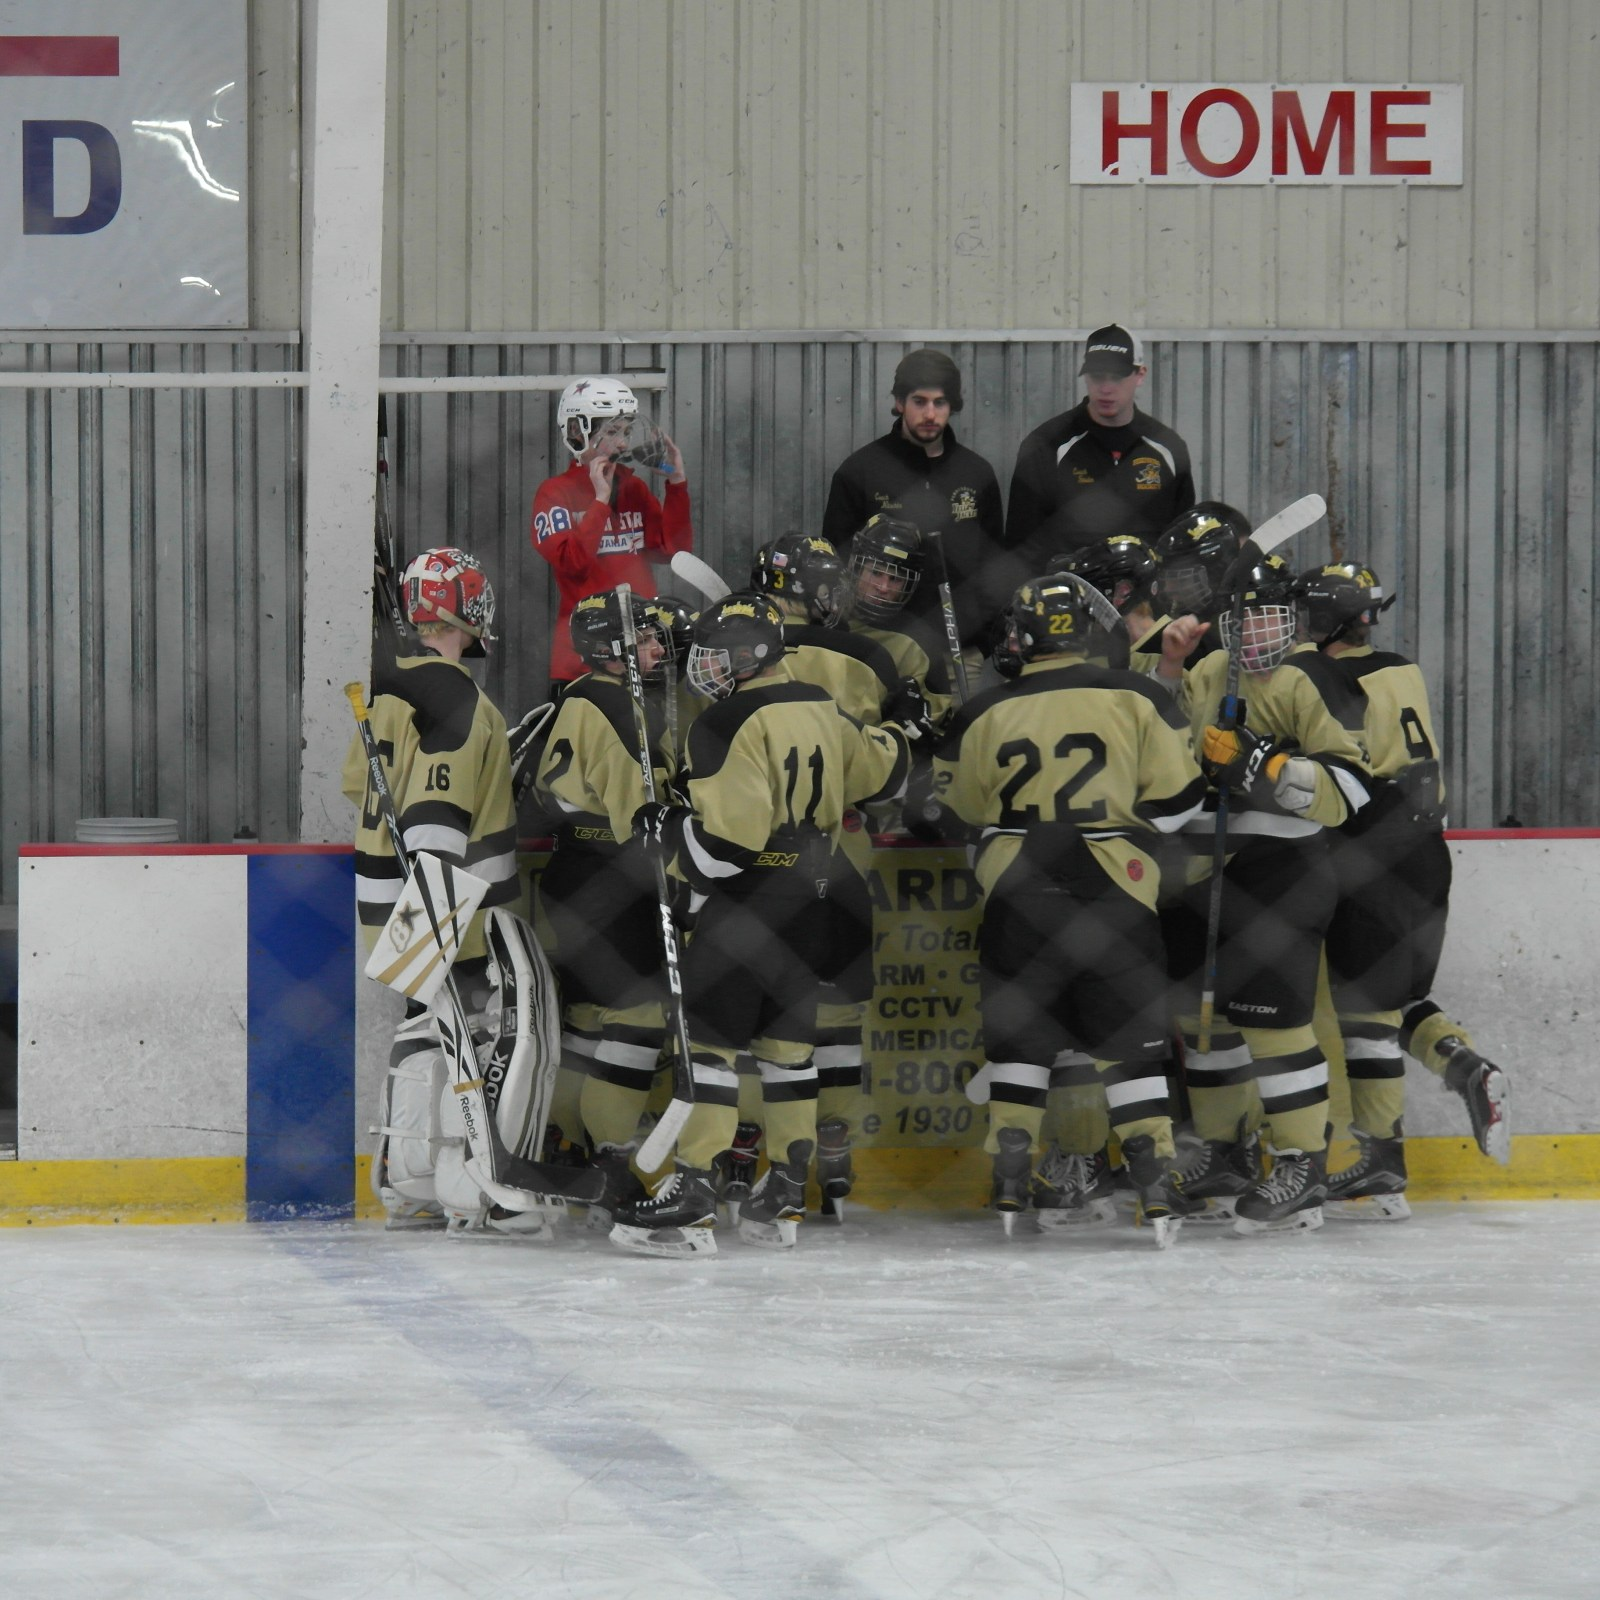 The Jacket Hockey players in a huddle | Picture Credit: Emily Swick